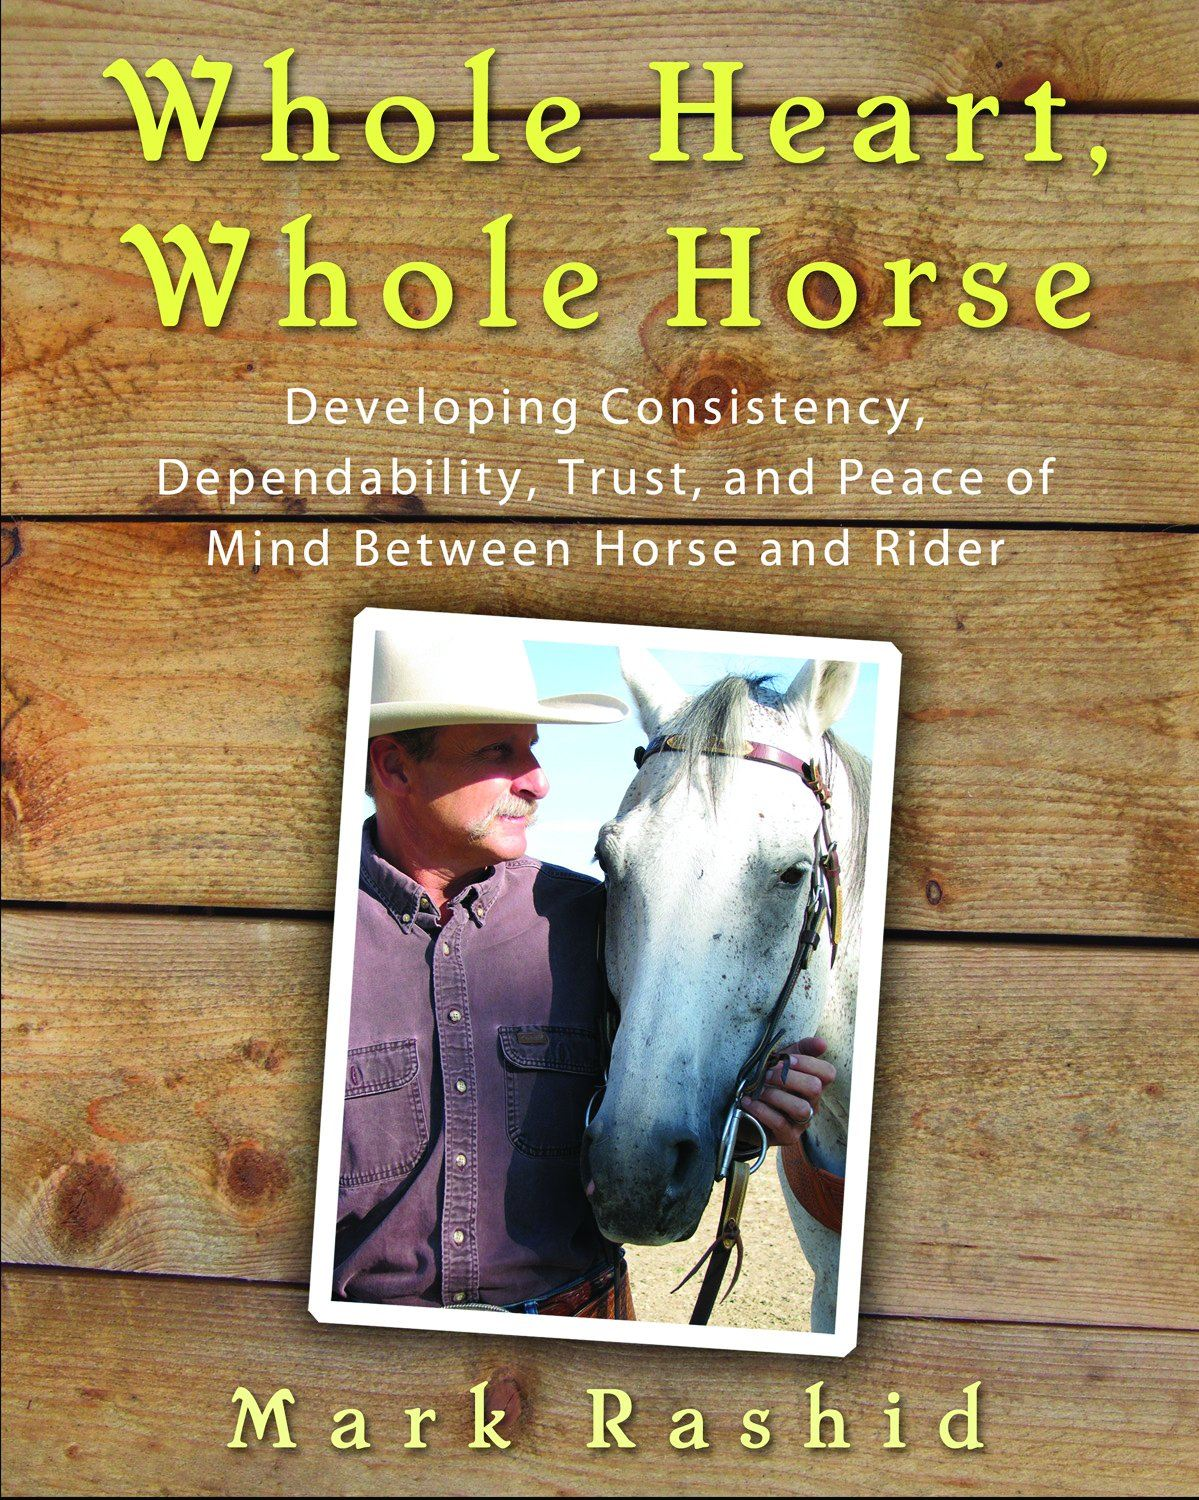 Whole Heart, Whole Horse: Building Trust Between Horse and Rider  By: Mark Rashid